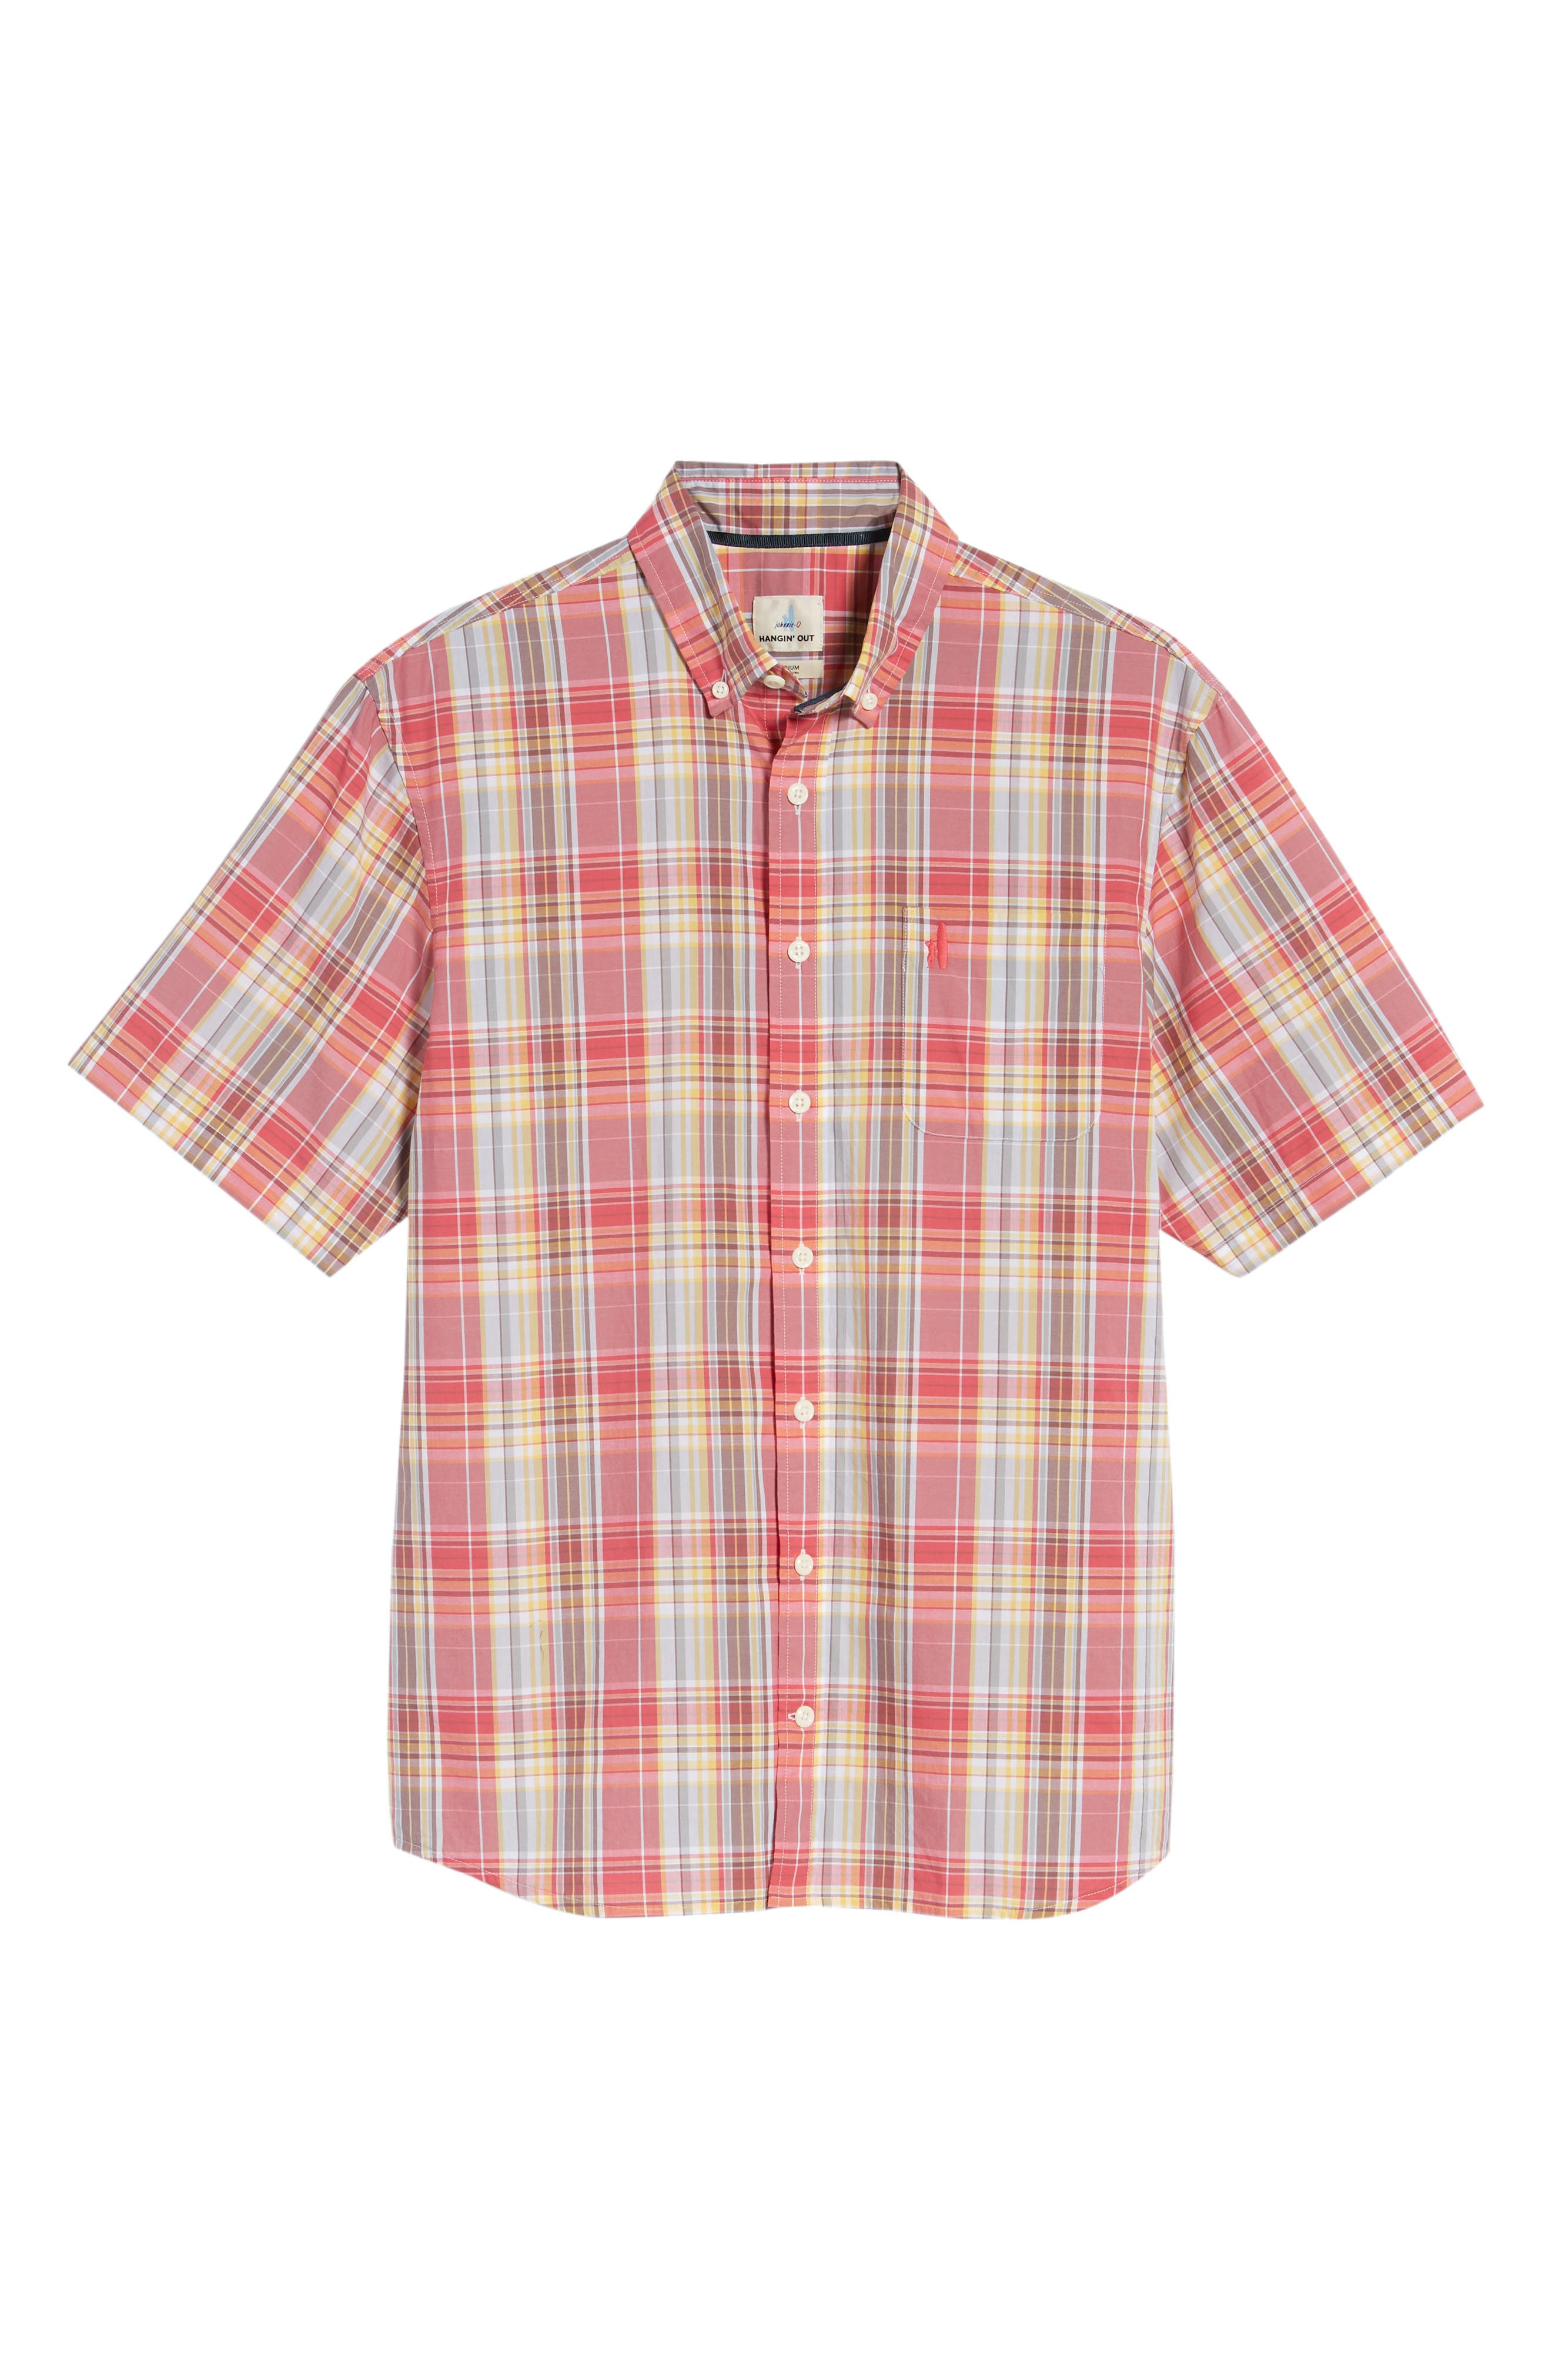 JOHNNIE-O,                             Glenn Classic Fit Plaid Sport Shirt,                             Alternate thumbnail 5, color,                             667